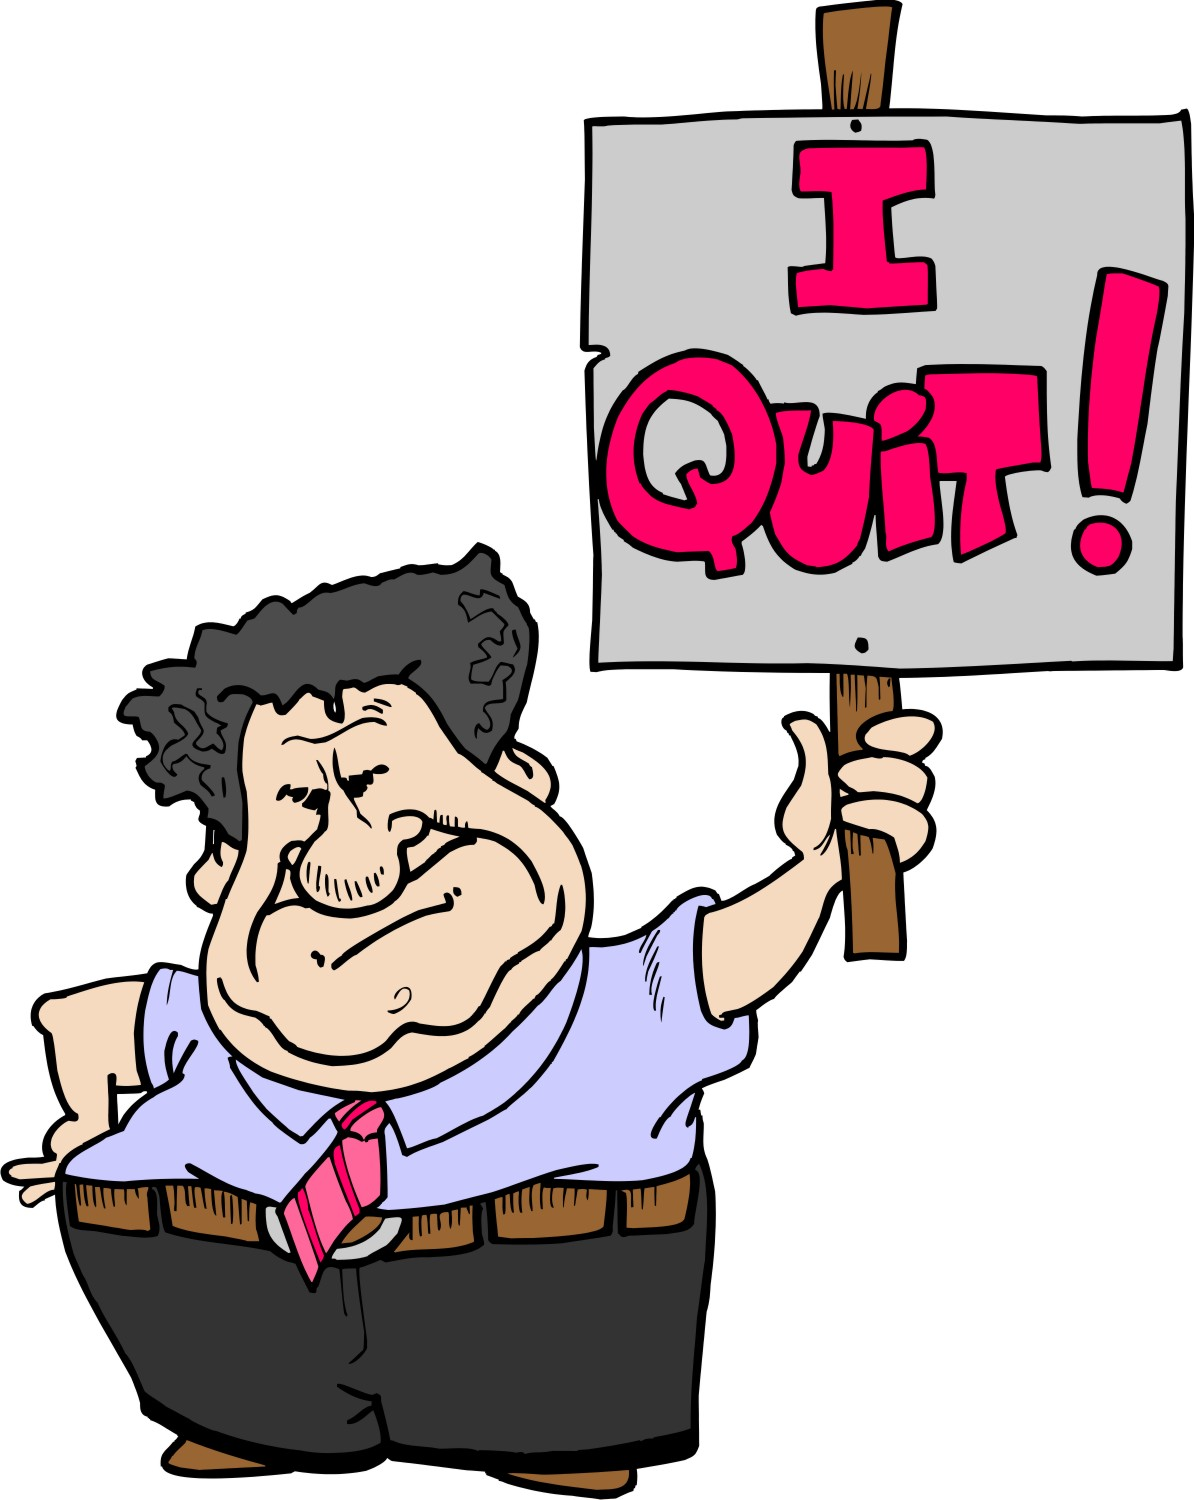 Sometimes leaders know when to quit | Childrens Ministry Online